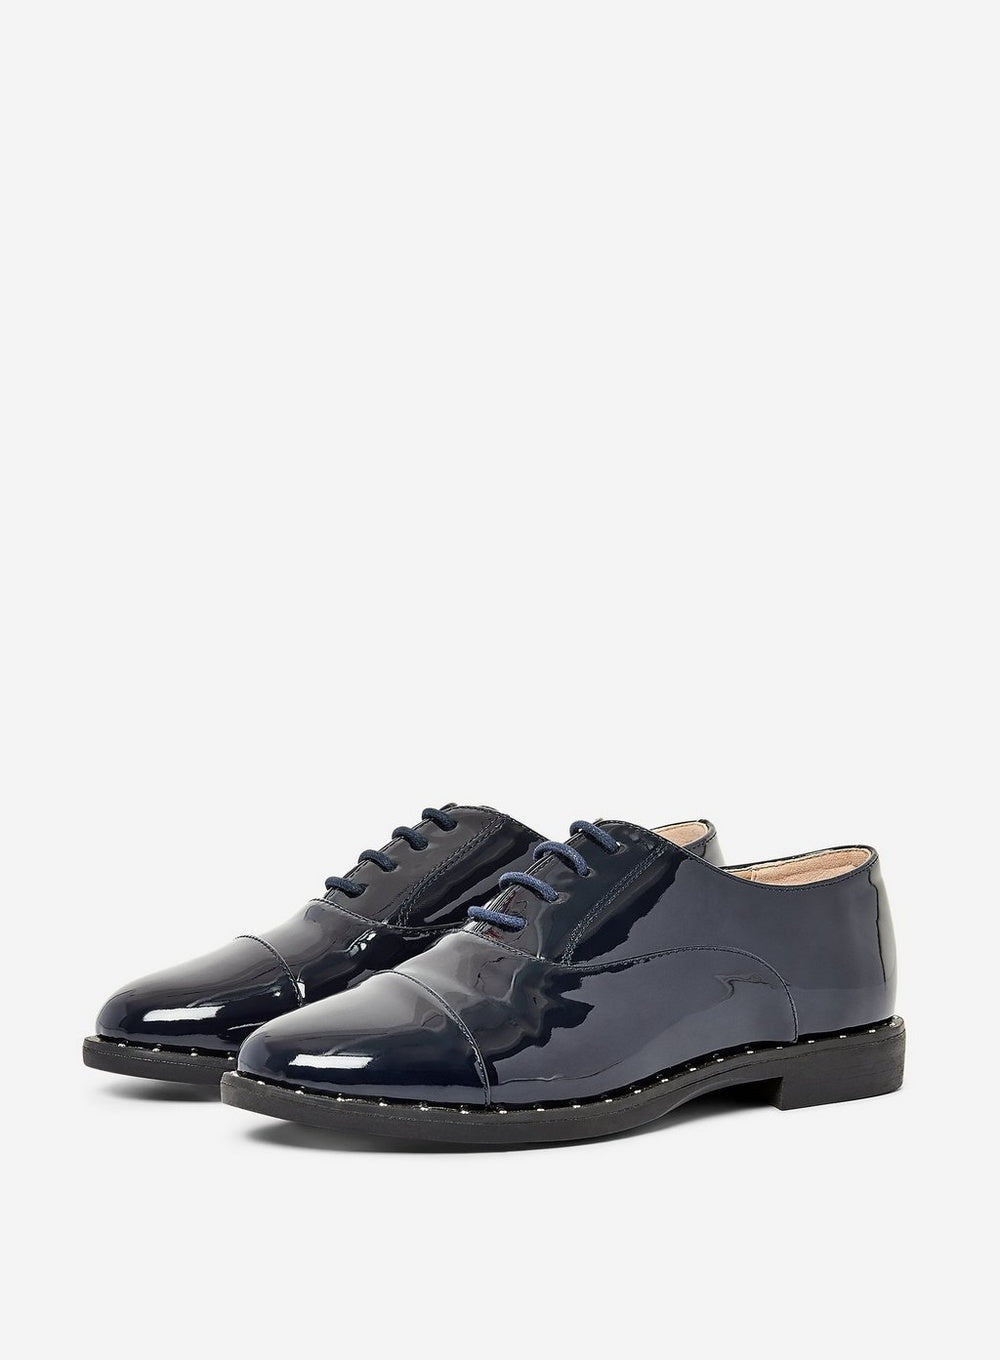 DOROTHY PERKINS NAVY LIMERICK LACE-UP BROGUES